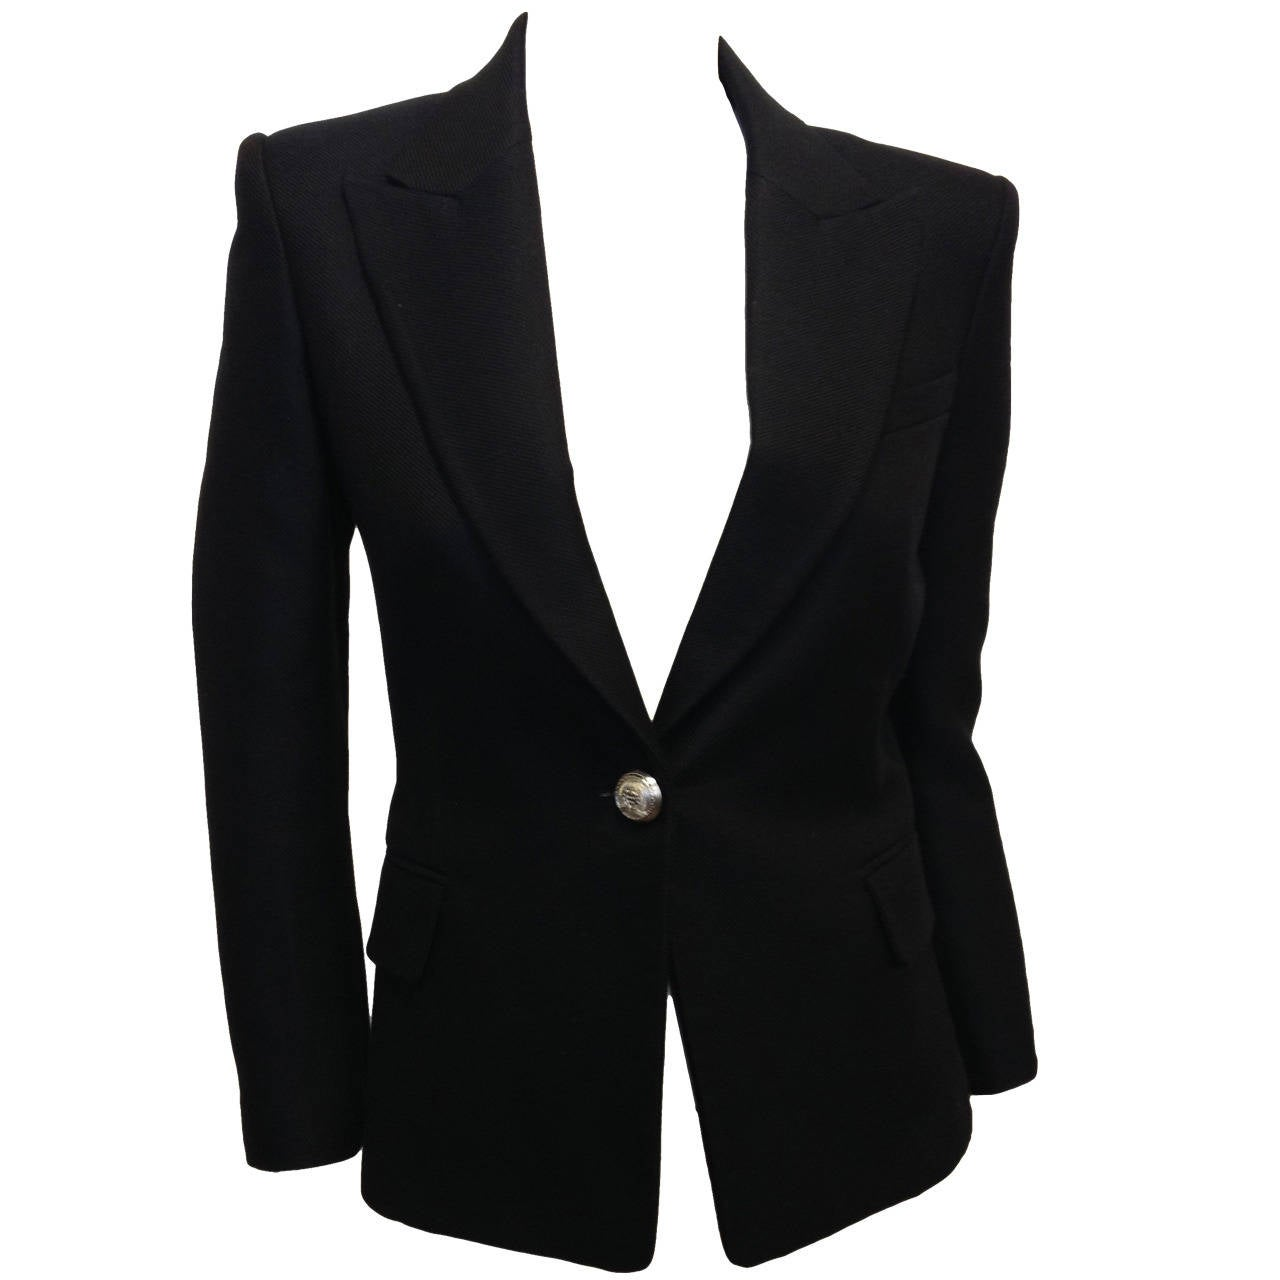 Balmain Black Blazer with Silver Buttons 1